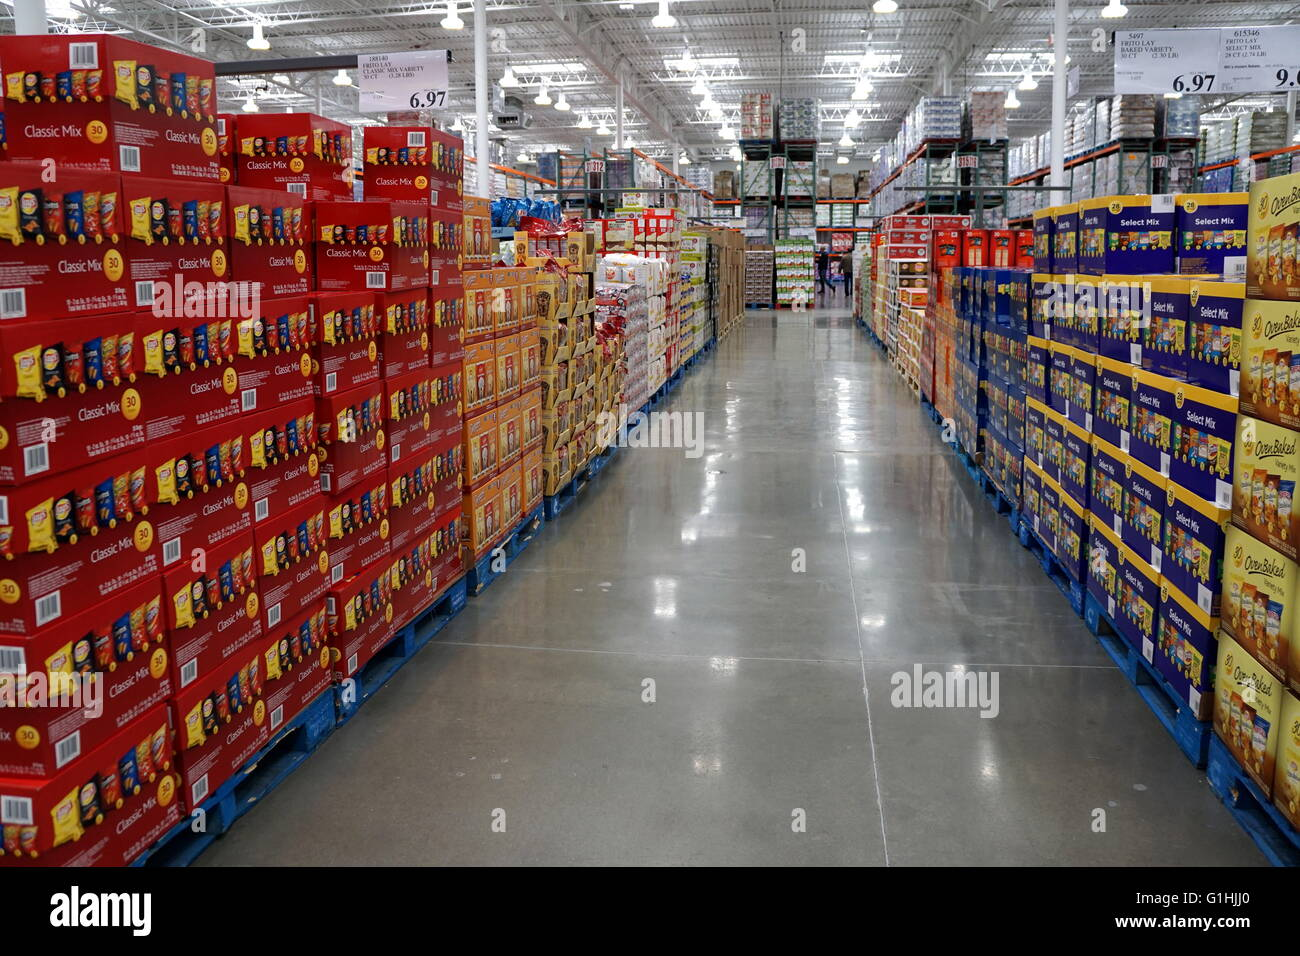 In , Costco was the third largest retailer in the United States. That year Costco announced plans to open an online store in China using Alibaba Group. Costco today. In the United States, Costco's main competitors operating membership warehouses are Sam's Club and BJ's Wholesale Club.